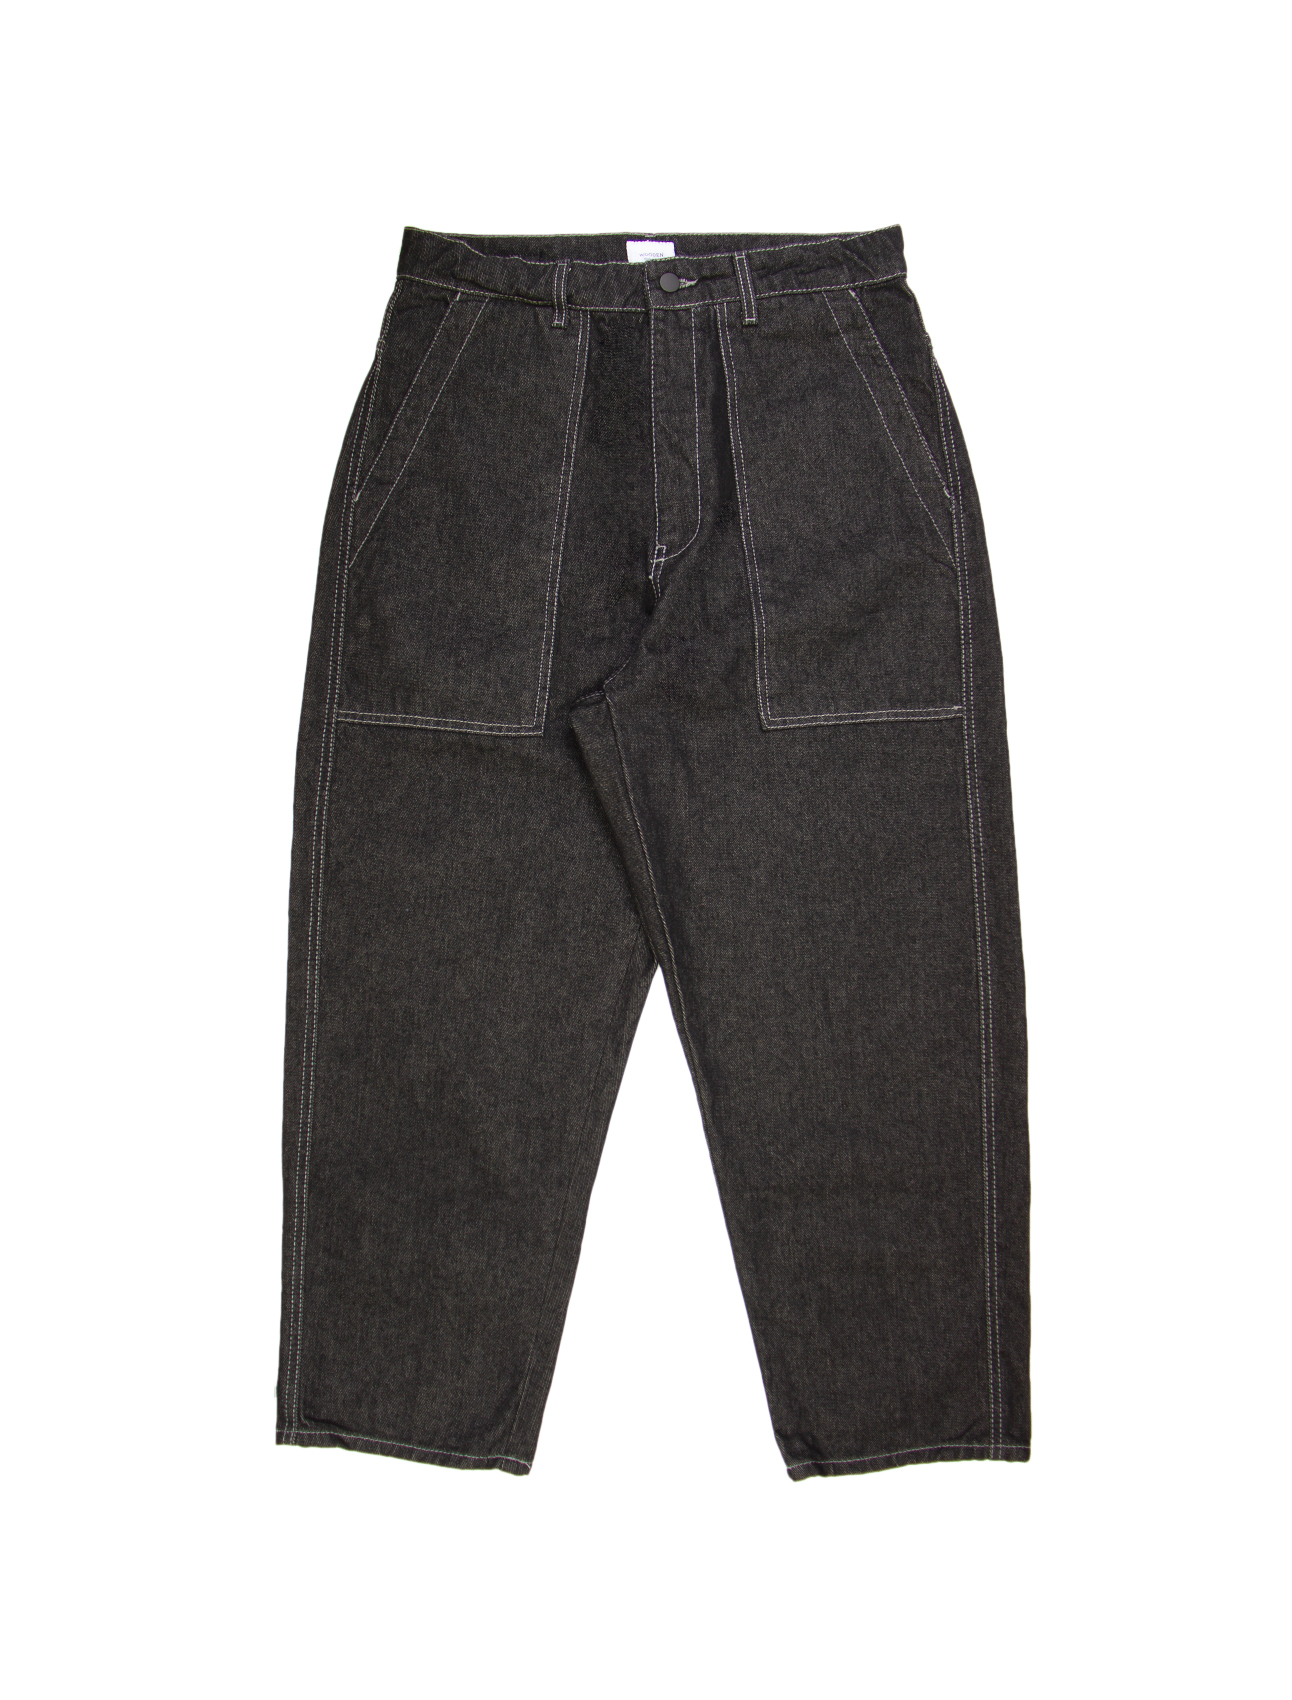 Jeans Japan Heritage Black | Wooden Store